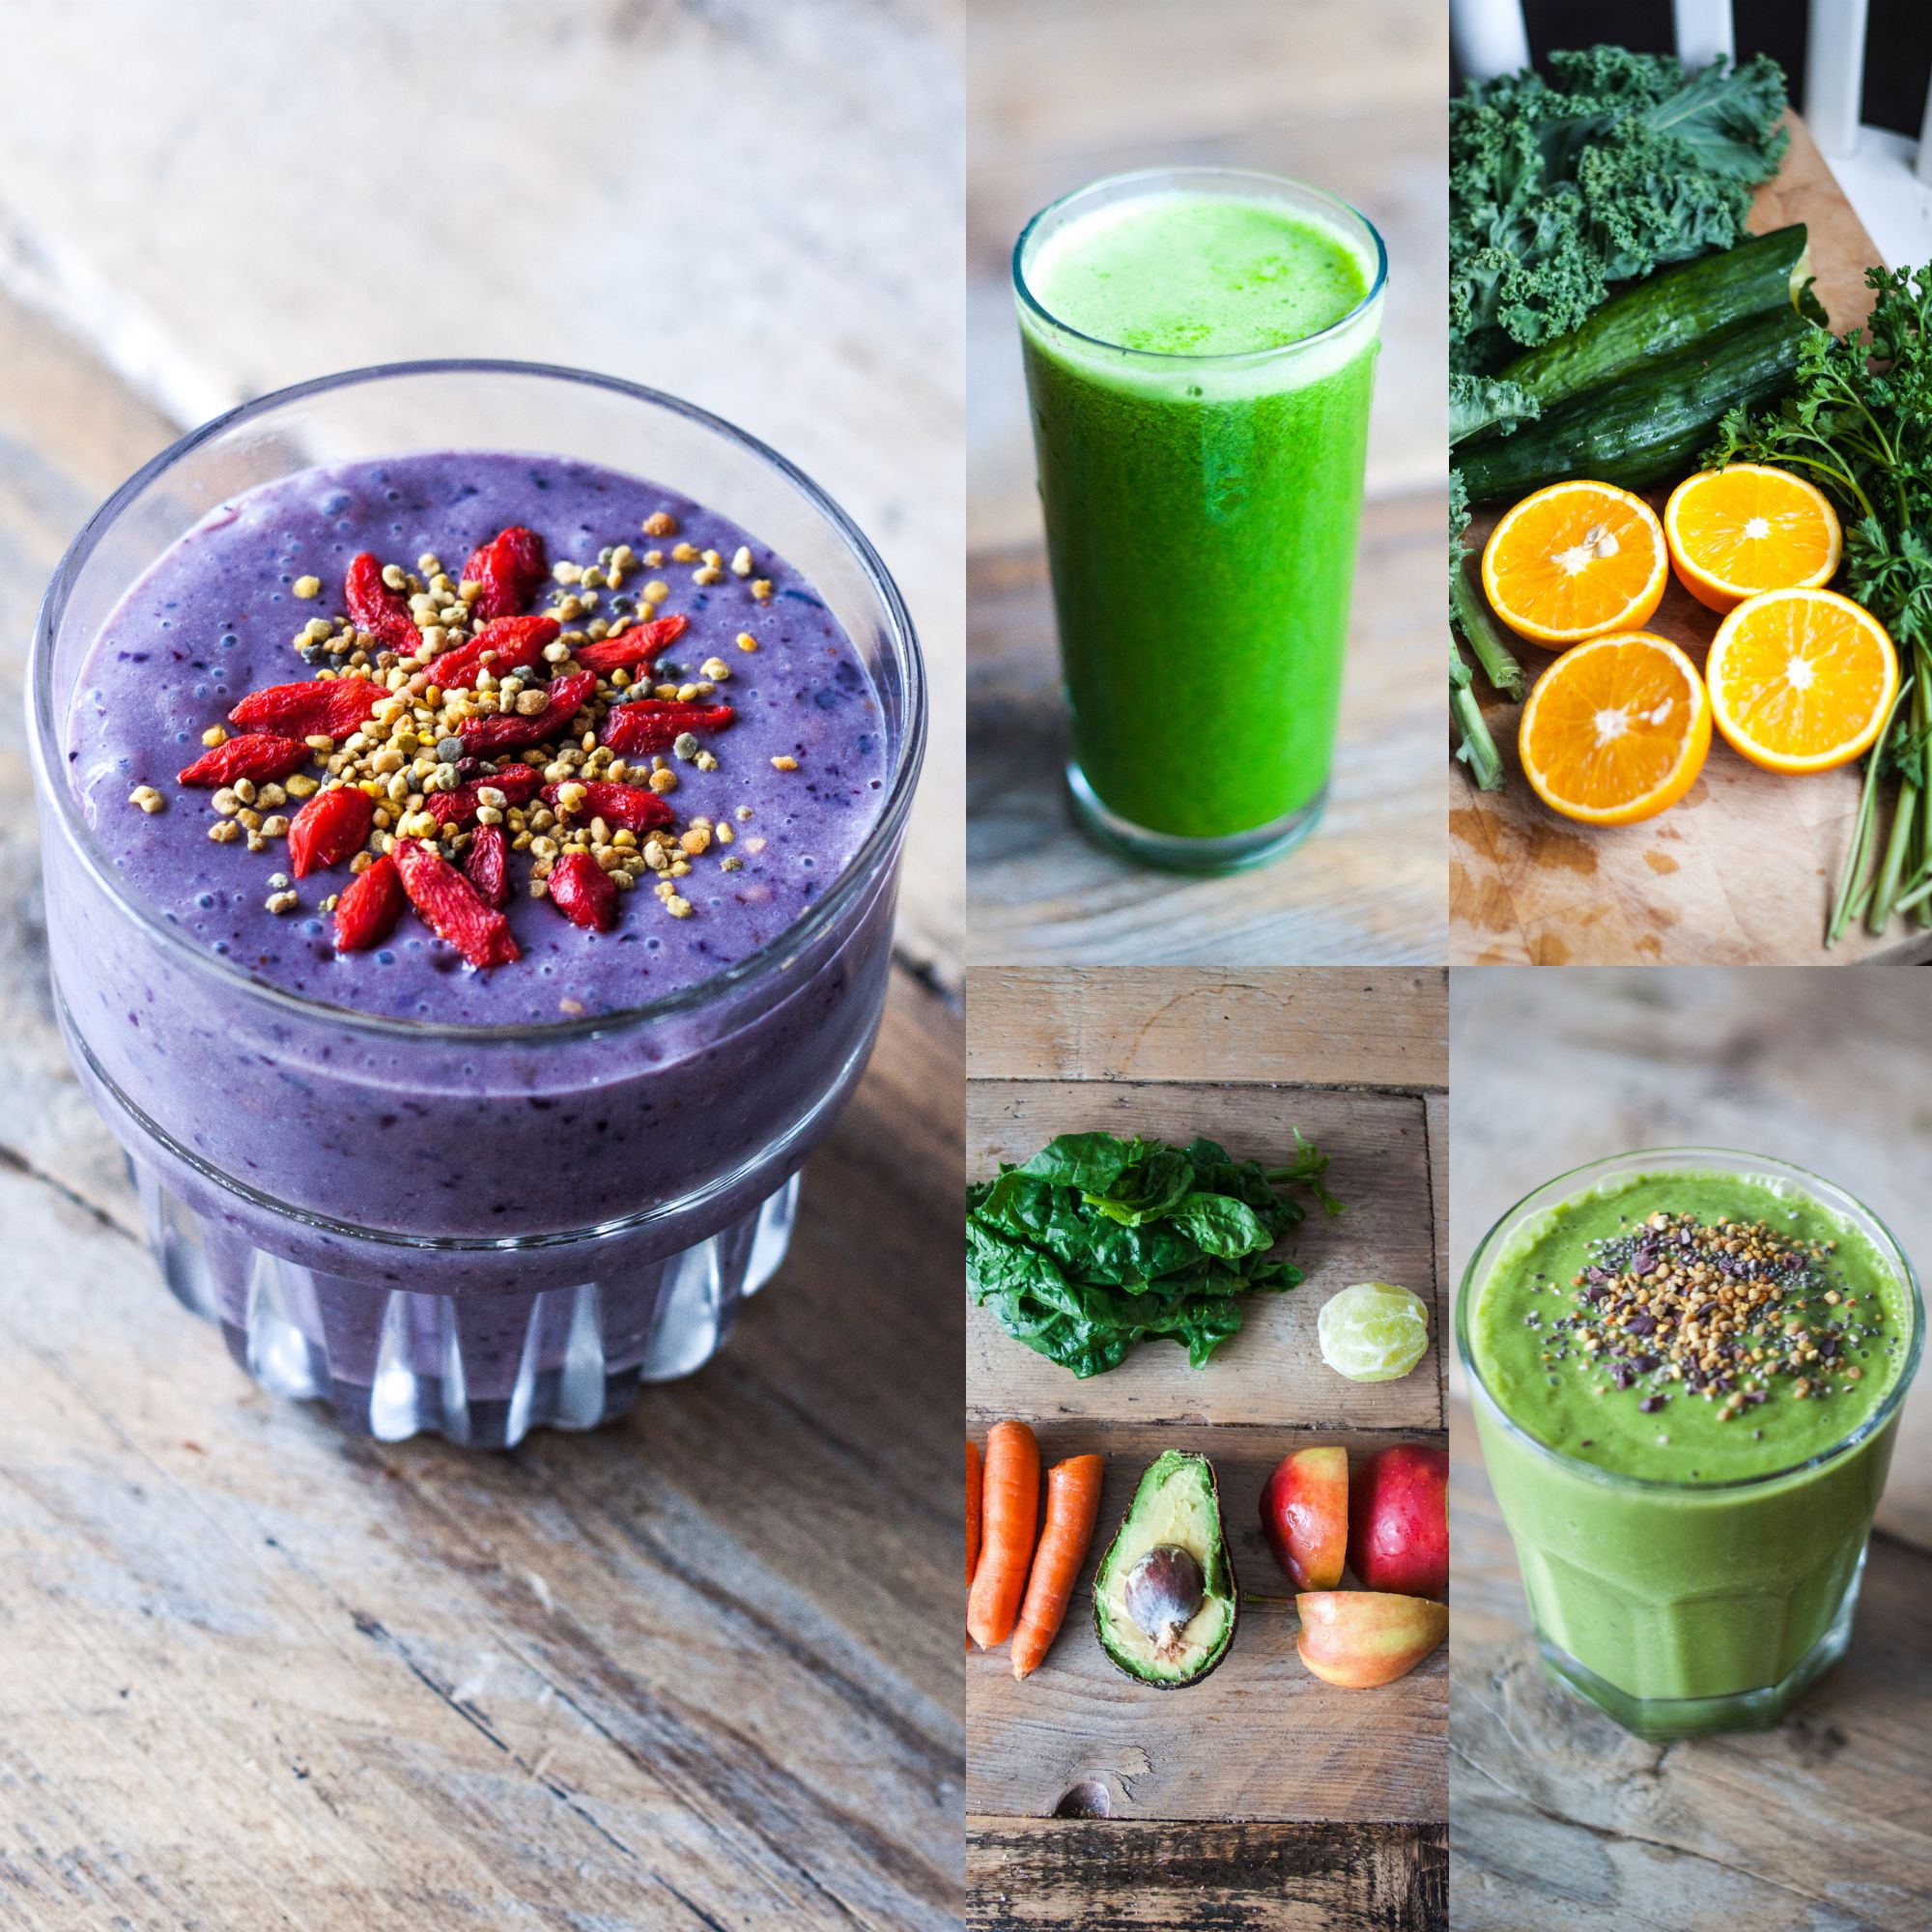 Food matters superfoods recipe book fitness pinterest food matters superfoods recipe book forumfinder Image collections